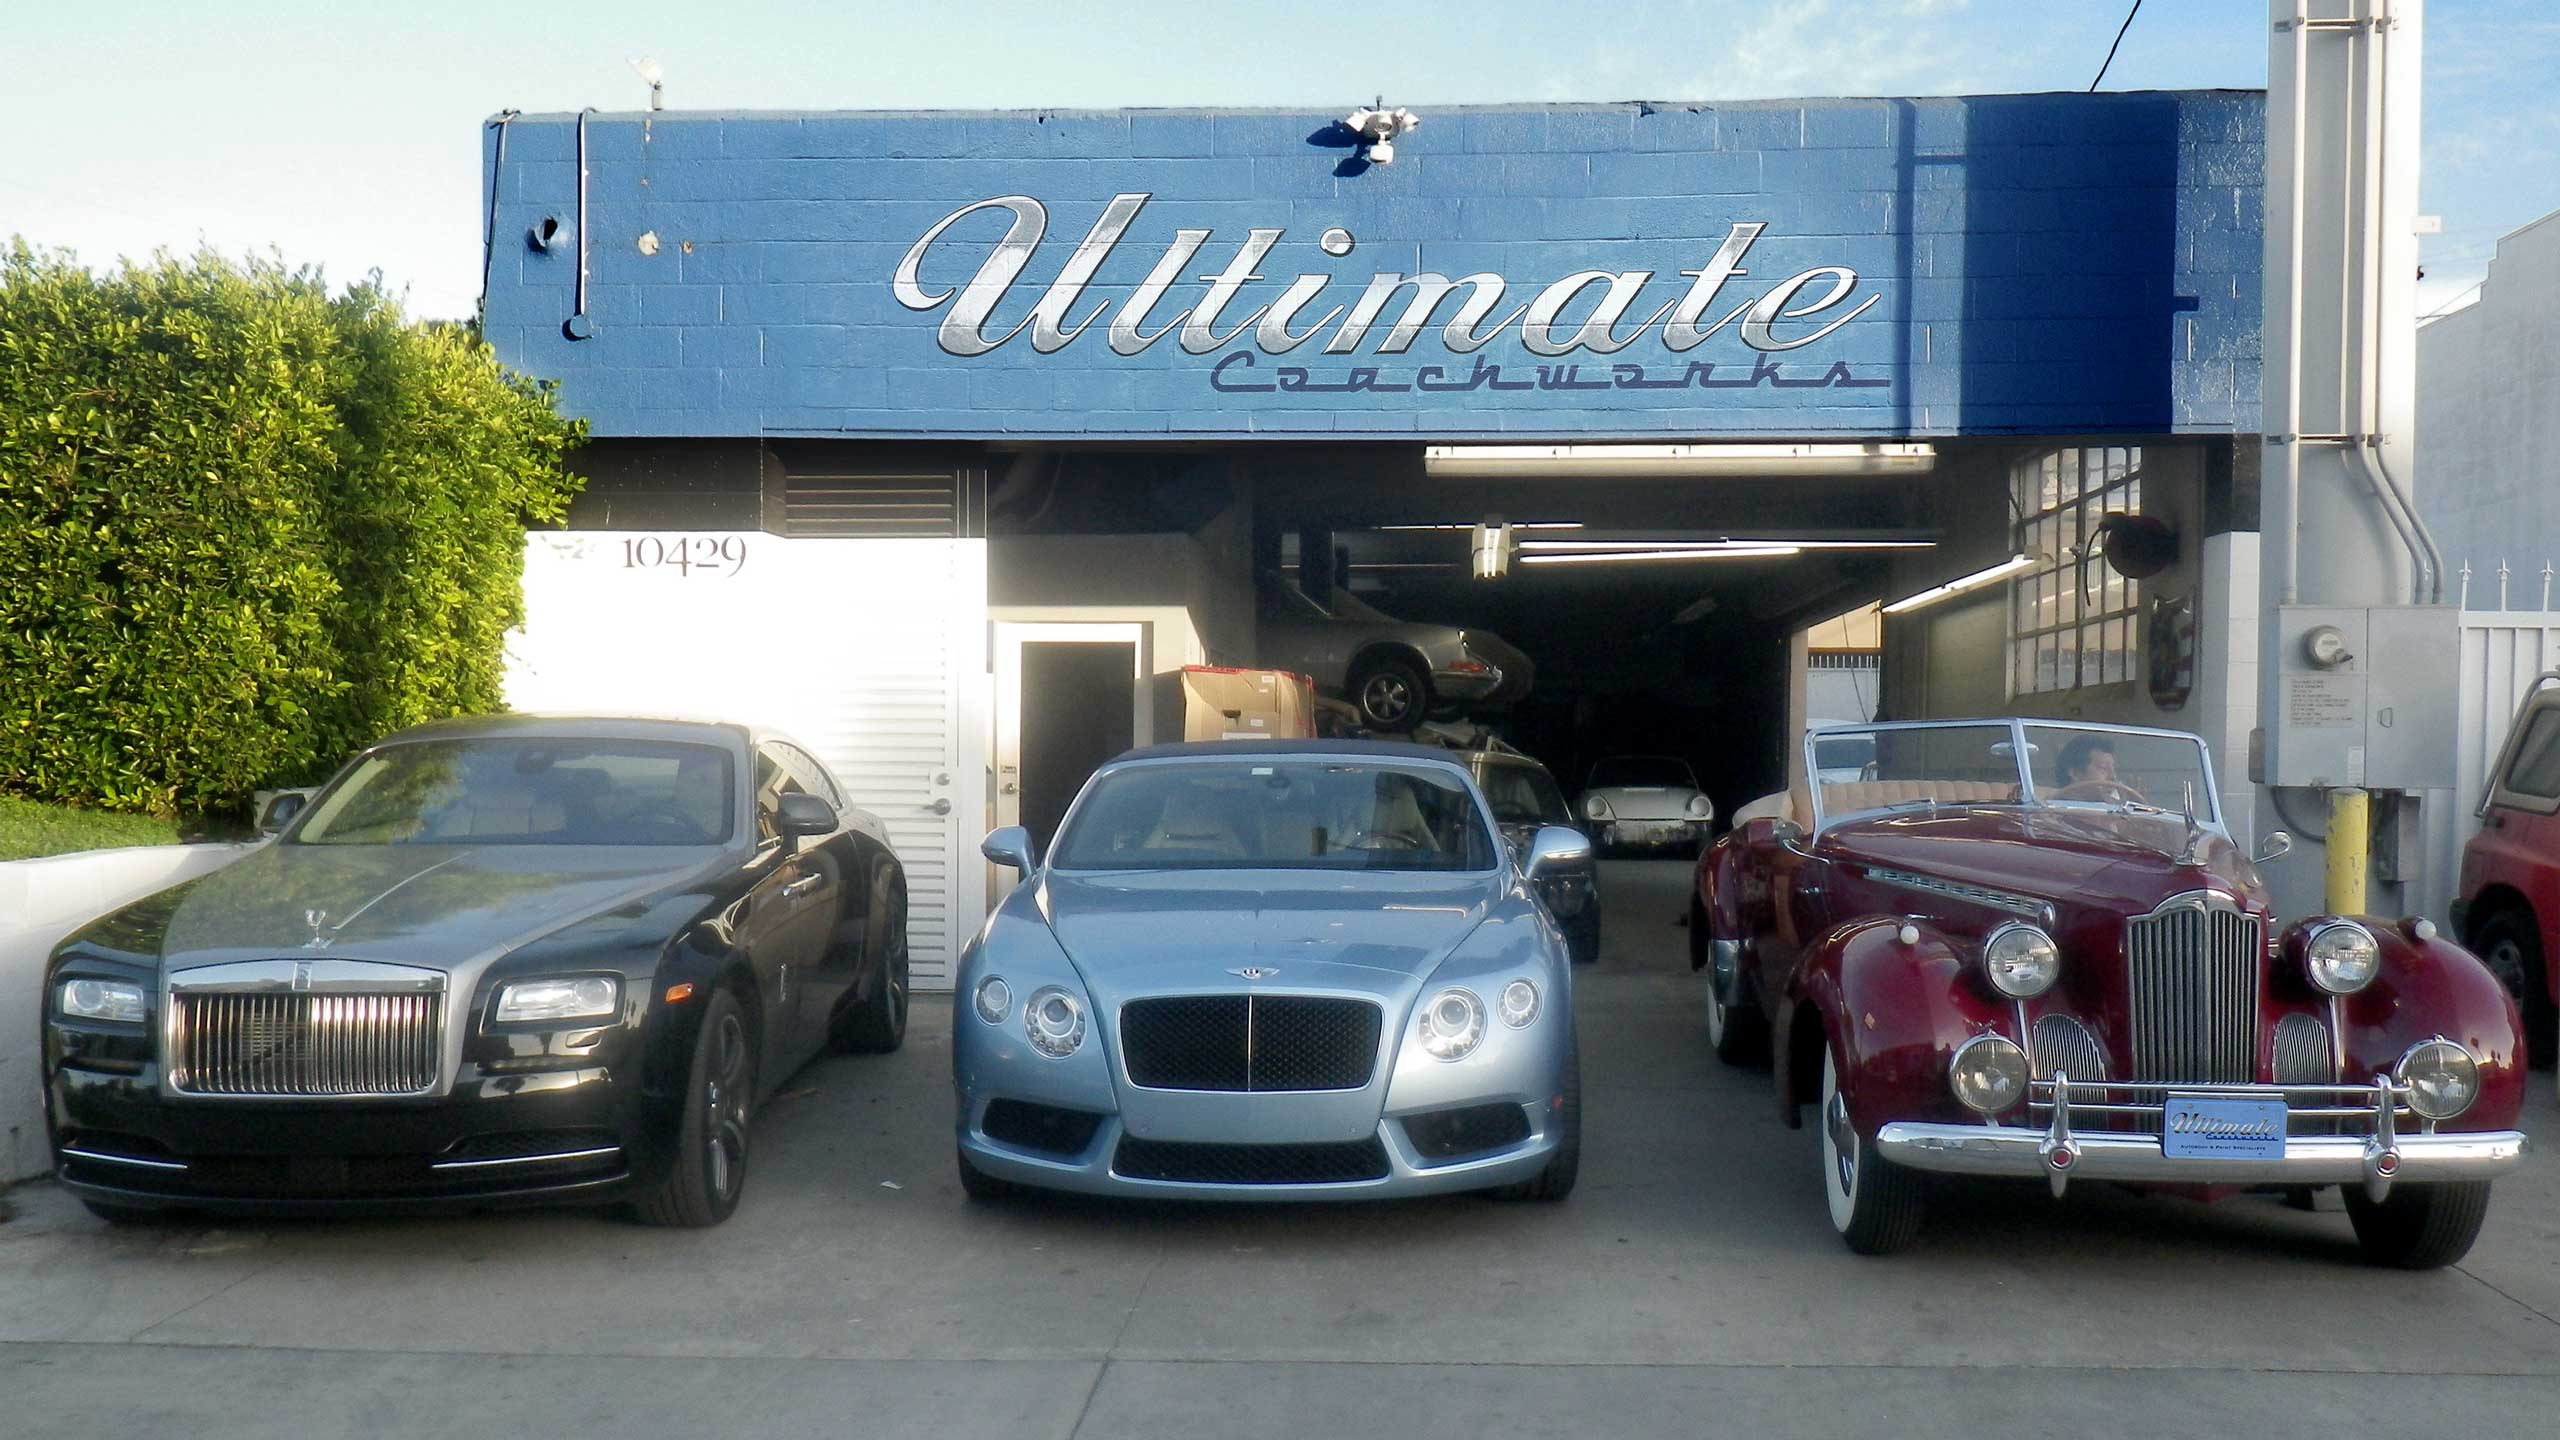 UC_3_car_front_storefront_2560x1440-001